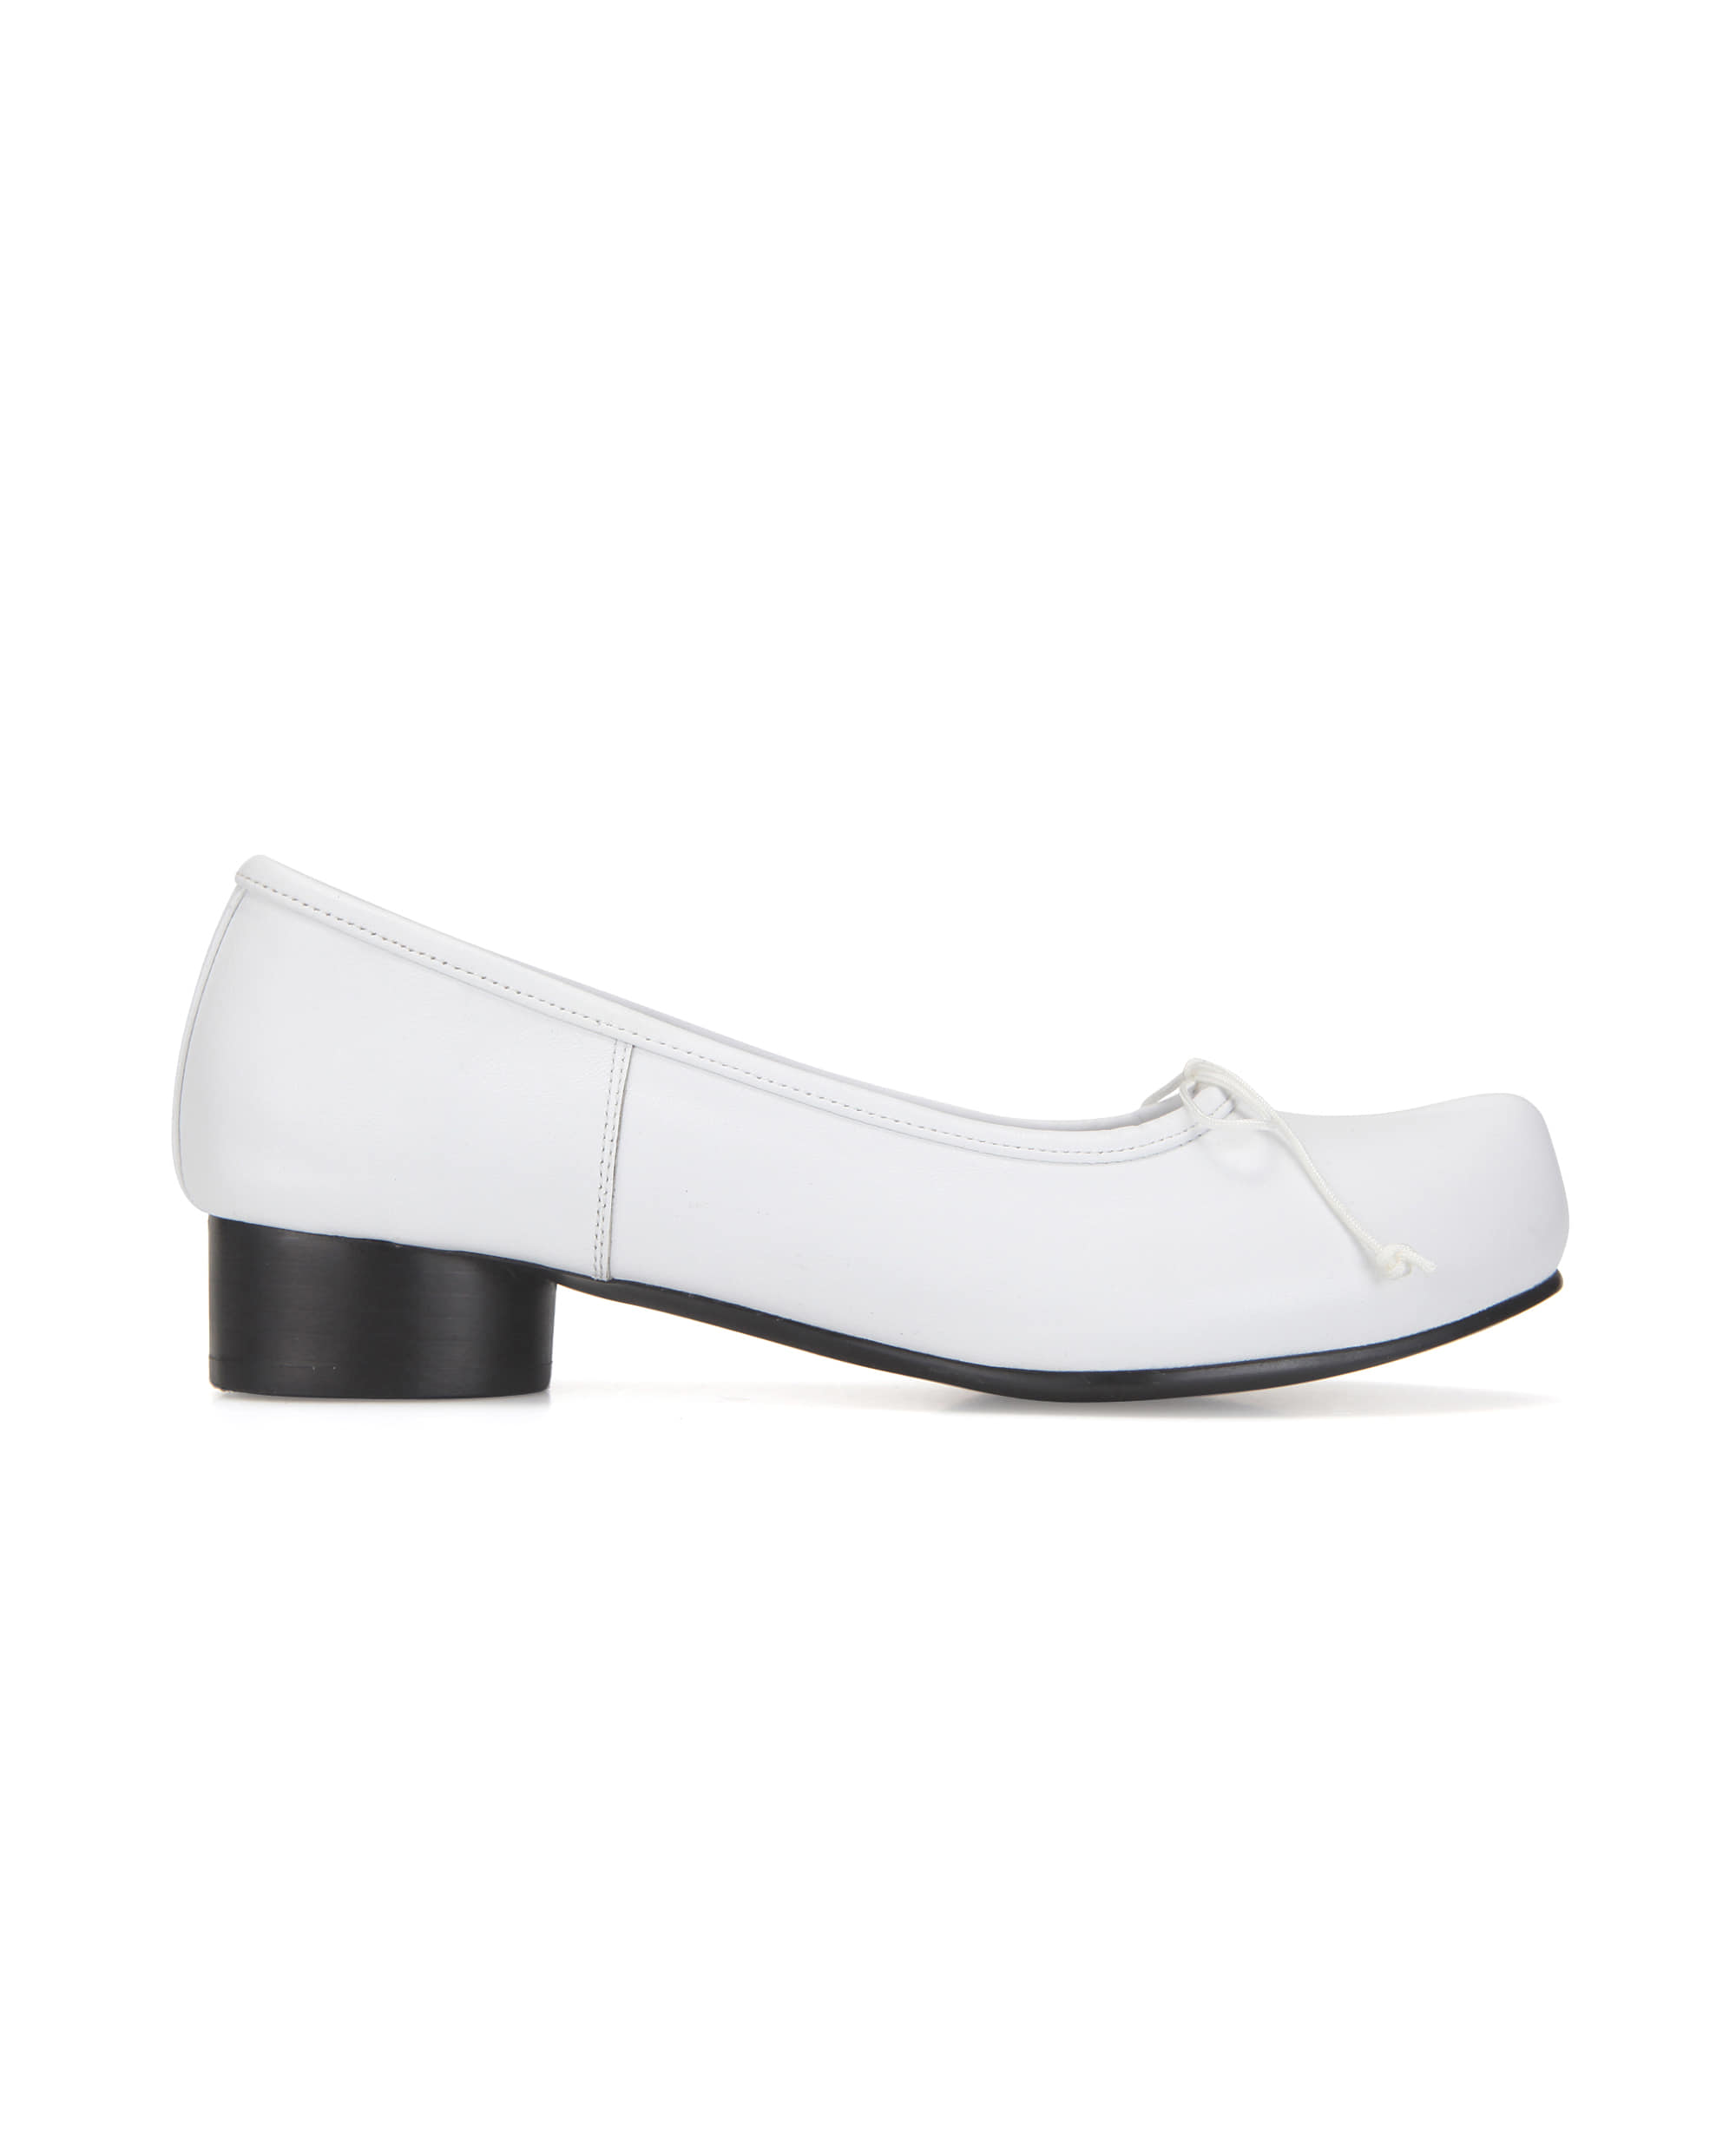 Pointed toe ballerina pumps | White